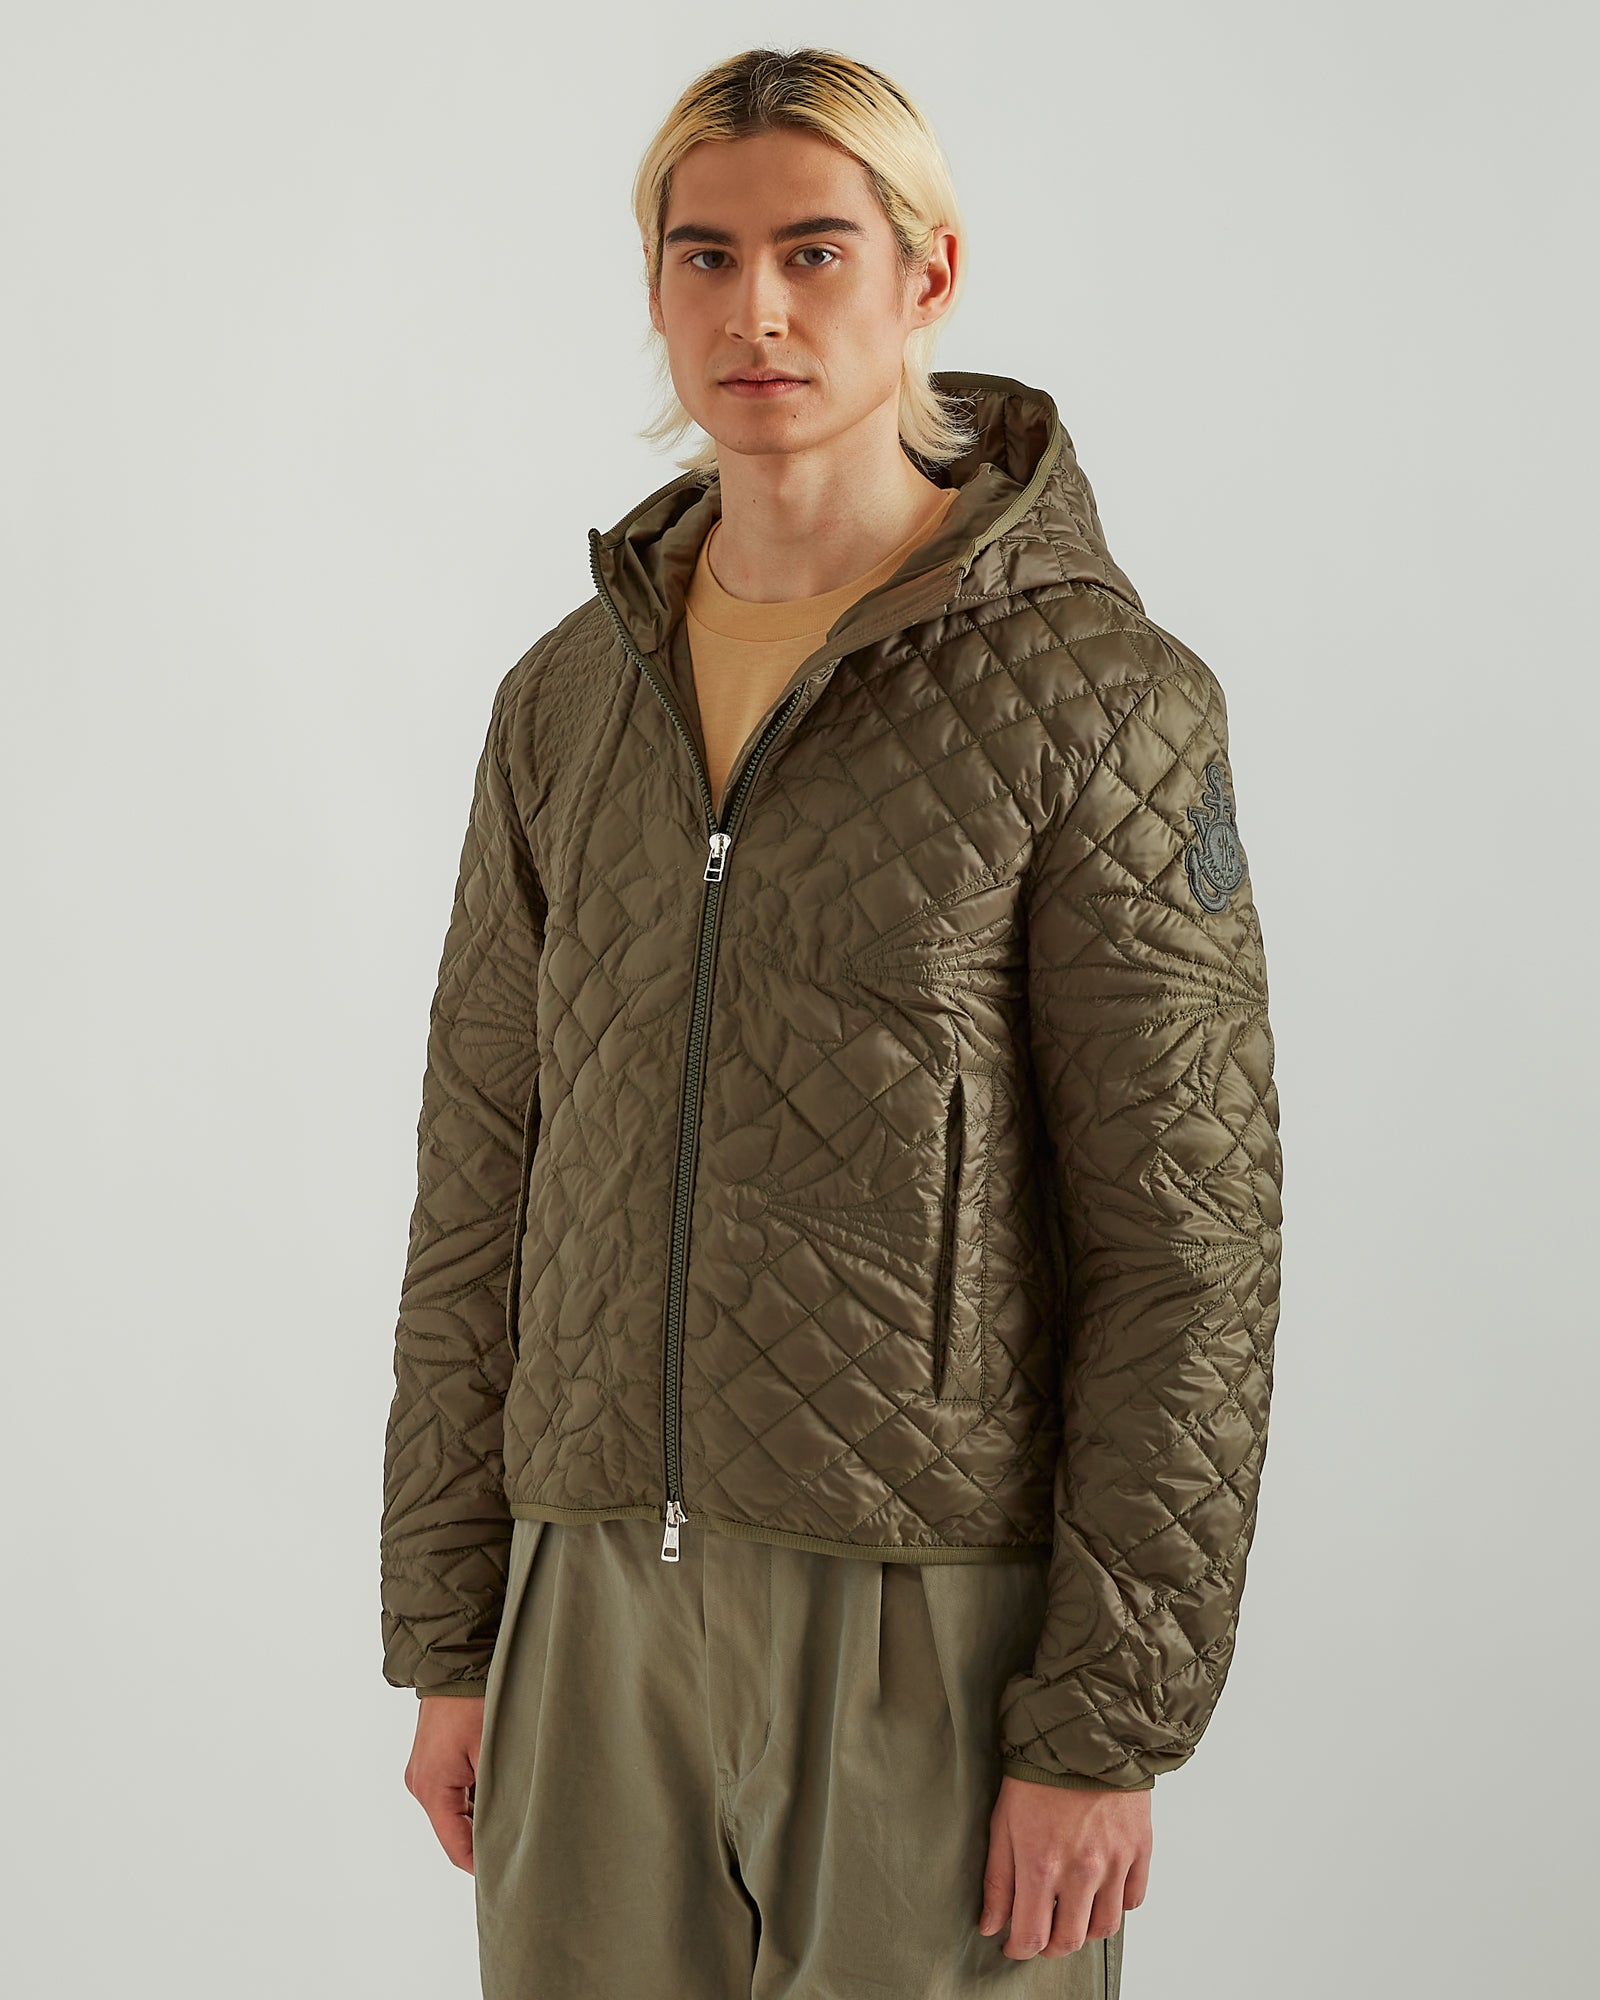 1Moncler JW Anderson Whitby Jacket in Forest Green